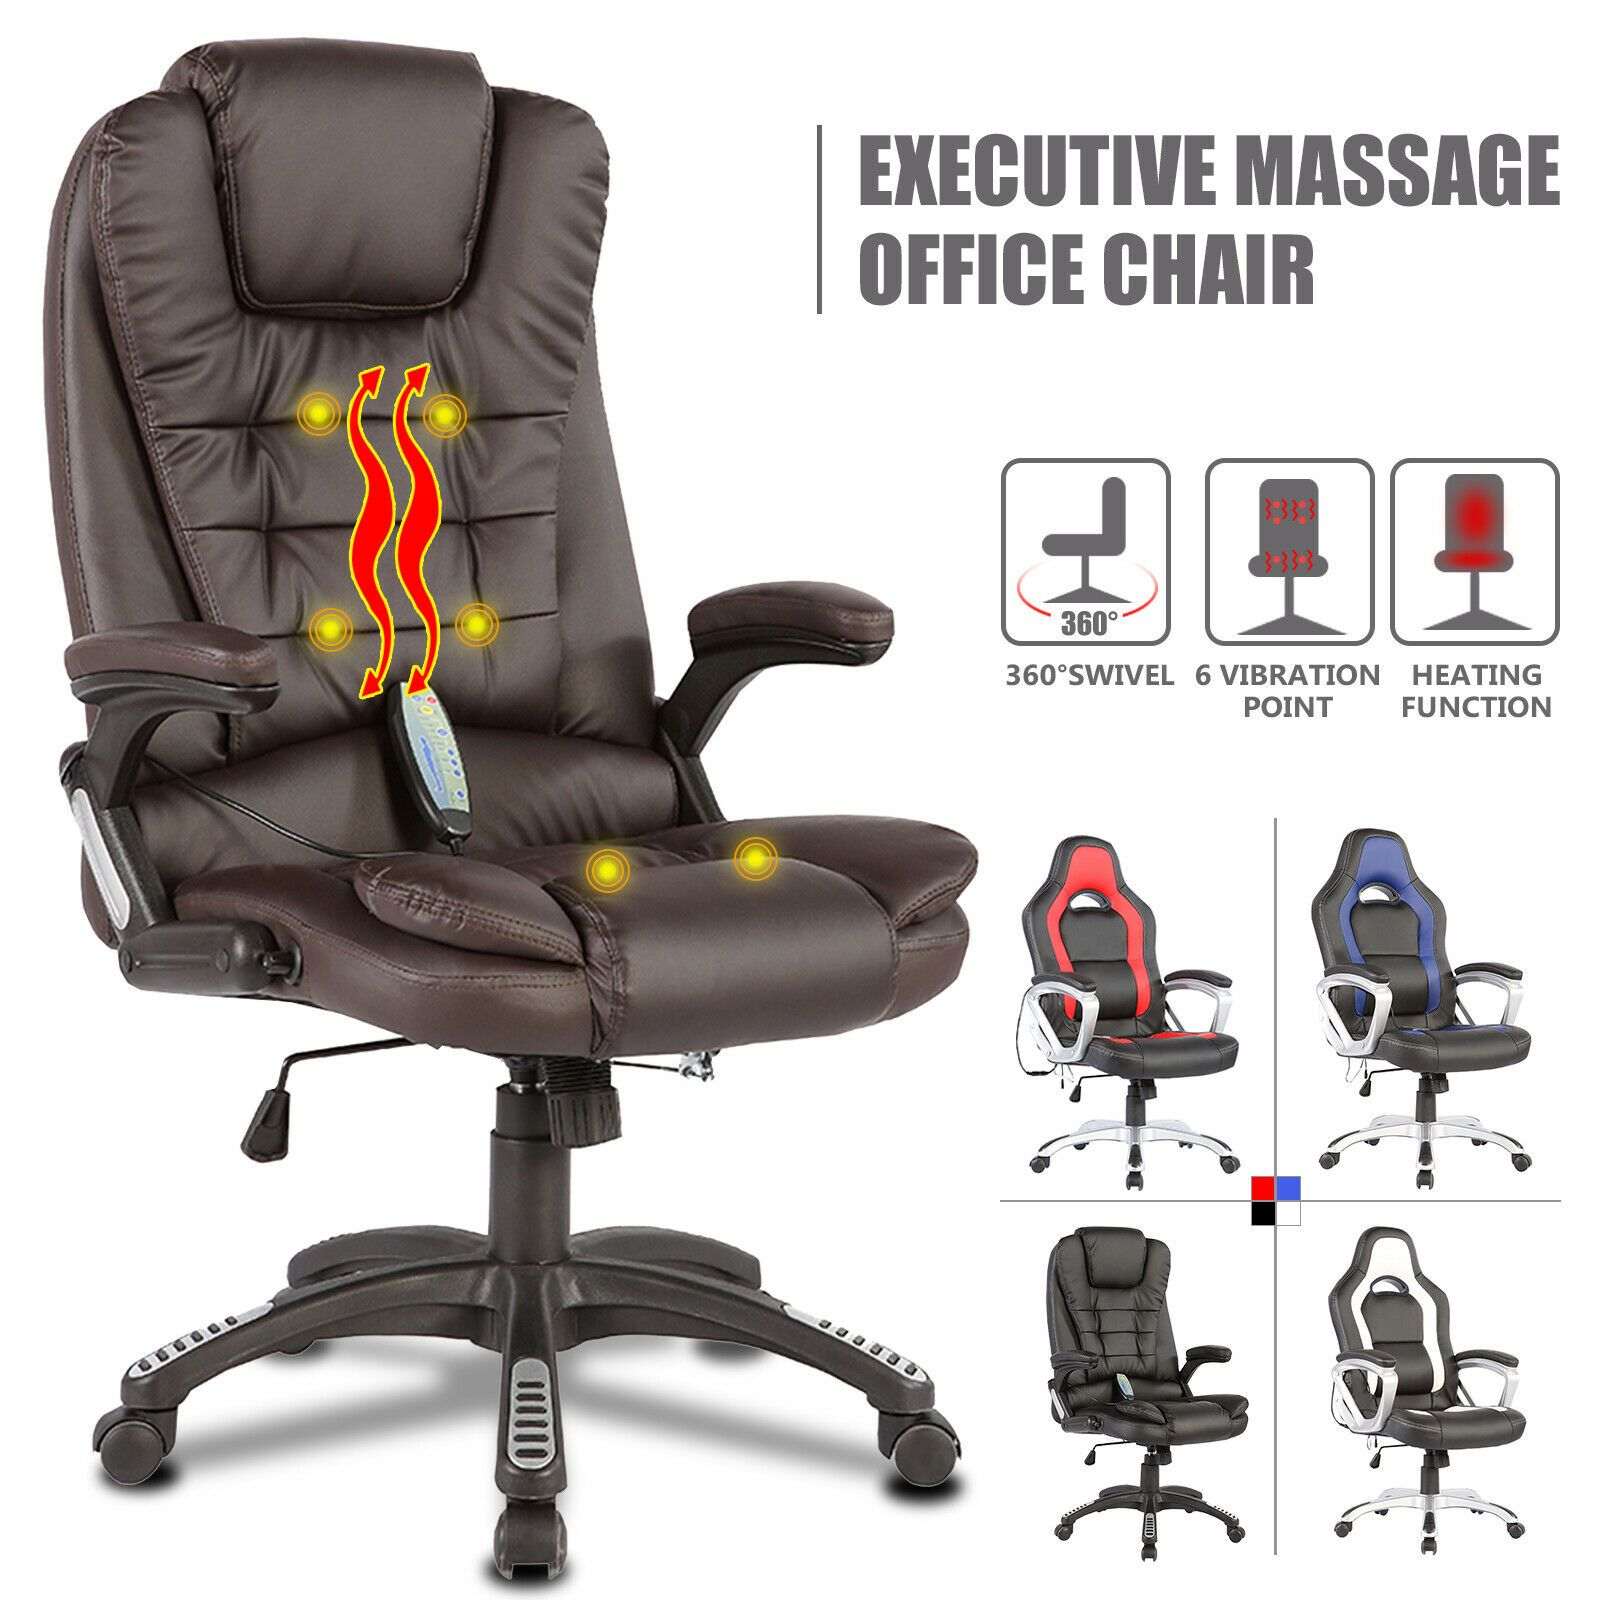 Details about 6 Point Racing Game Massage Office Chair PU